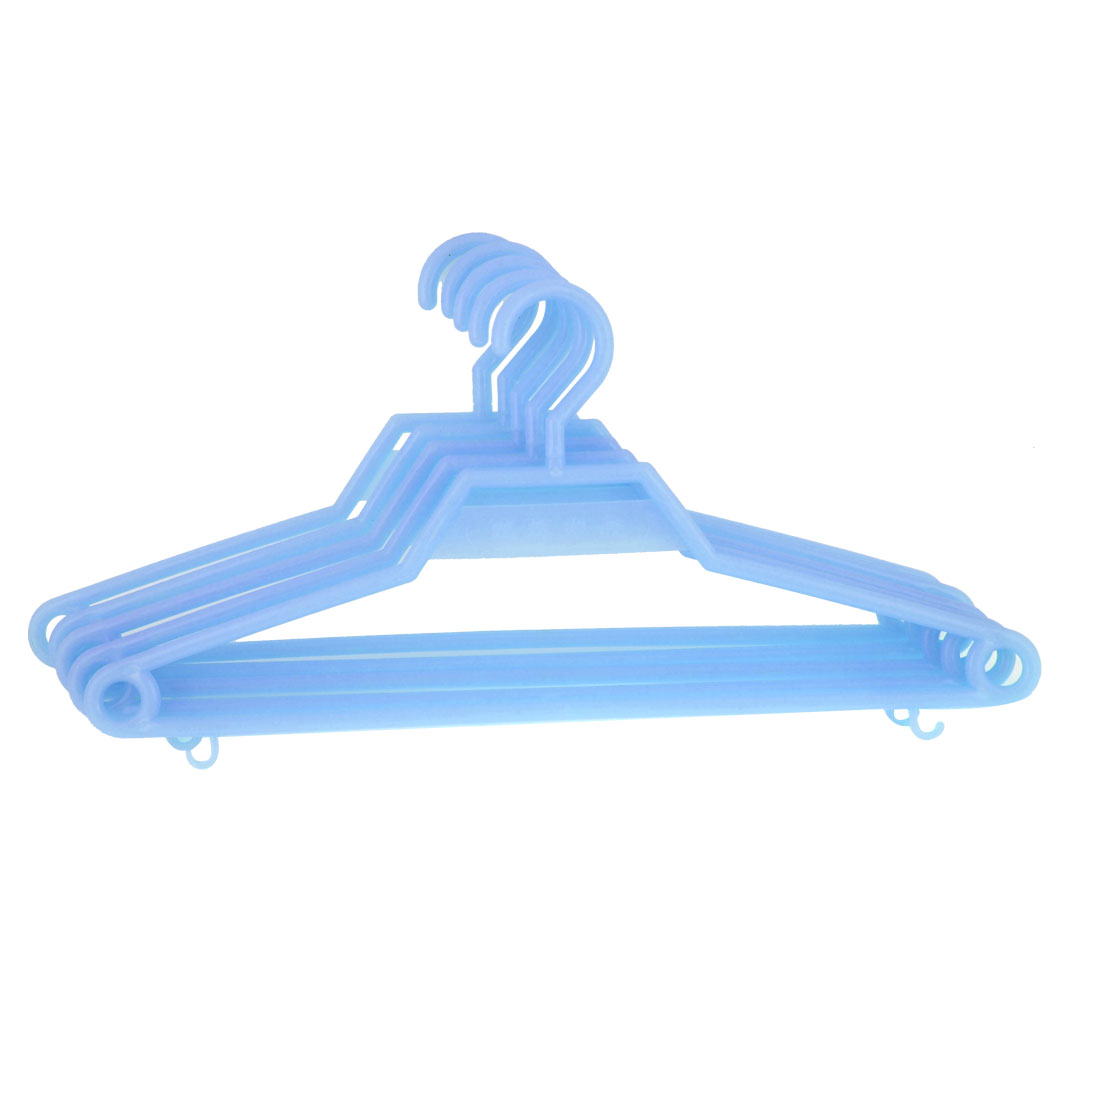 41.5cm x 19cm Jacket Trousers Blue Plastic Clothing Hook Hangers 5pcs